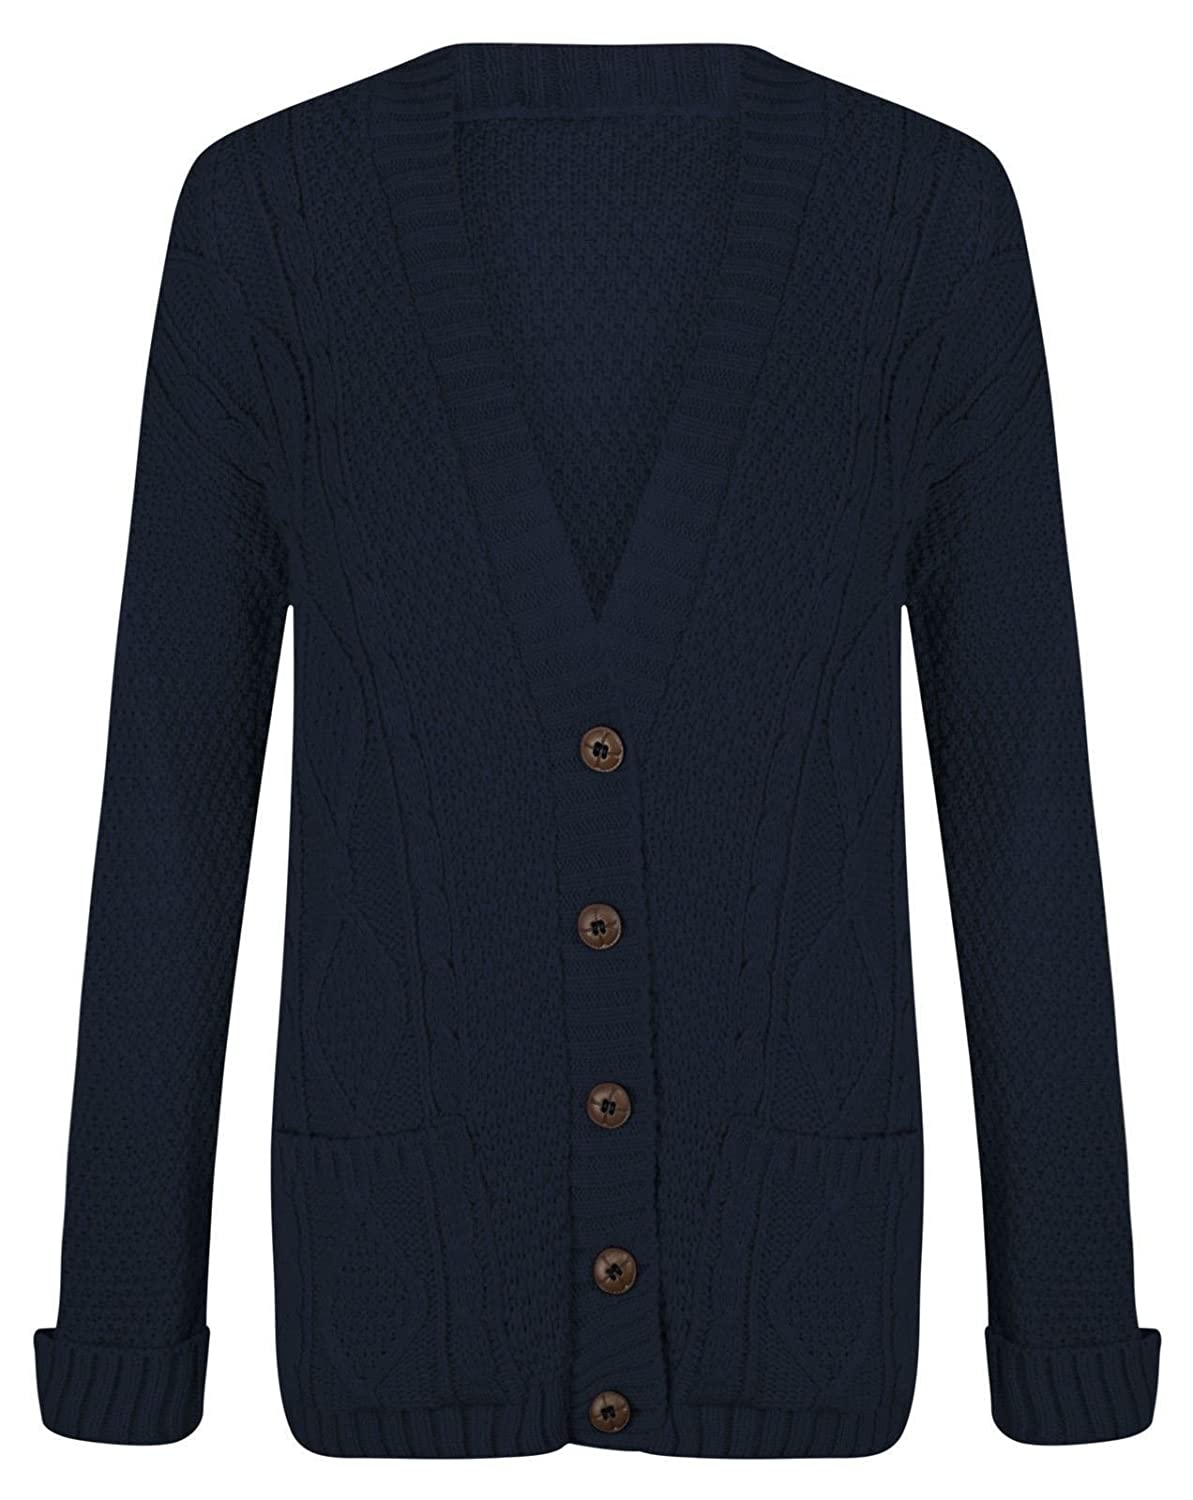 Fashion Valley Womens Long Sleeve Chunky Cable Knitted Button Ladies Grandad Long Cardigan Plus Size UK 24-26 XXXL.Navy